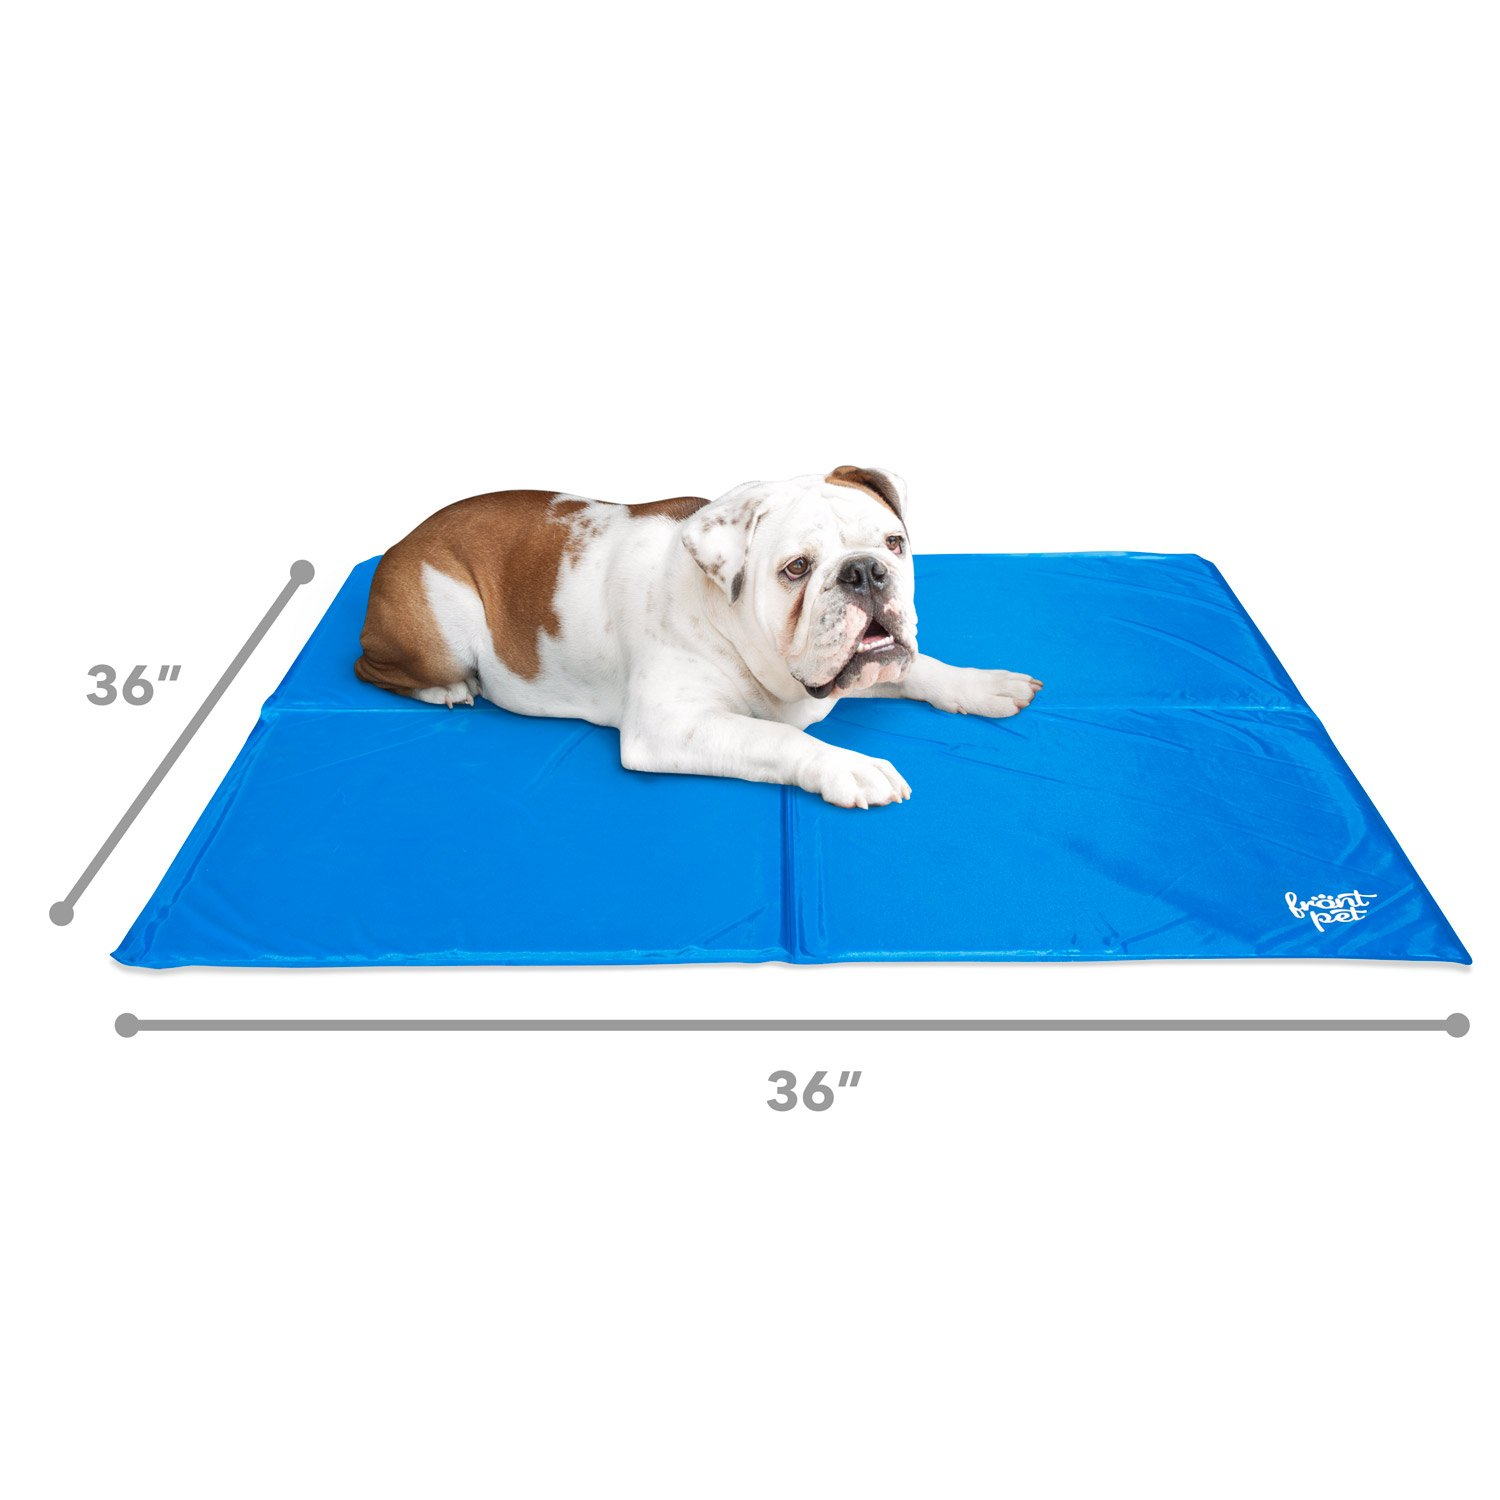 FrontPet Dog Cooling Pad With Self Cooling Technology! Foldable Extra Large 36 x 36 With Easy to Clean Surface! Great Pet Cooling Mat For All Sizes And Breeds!